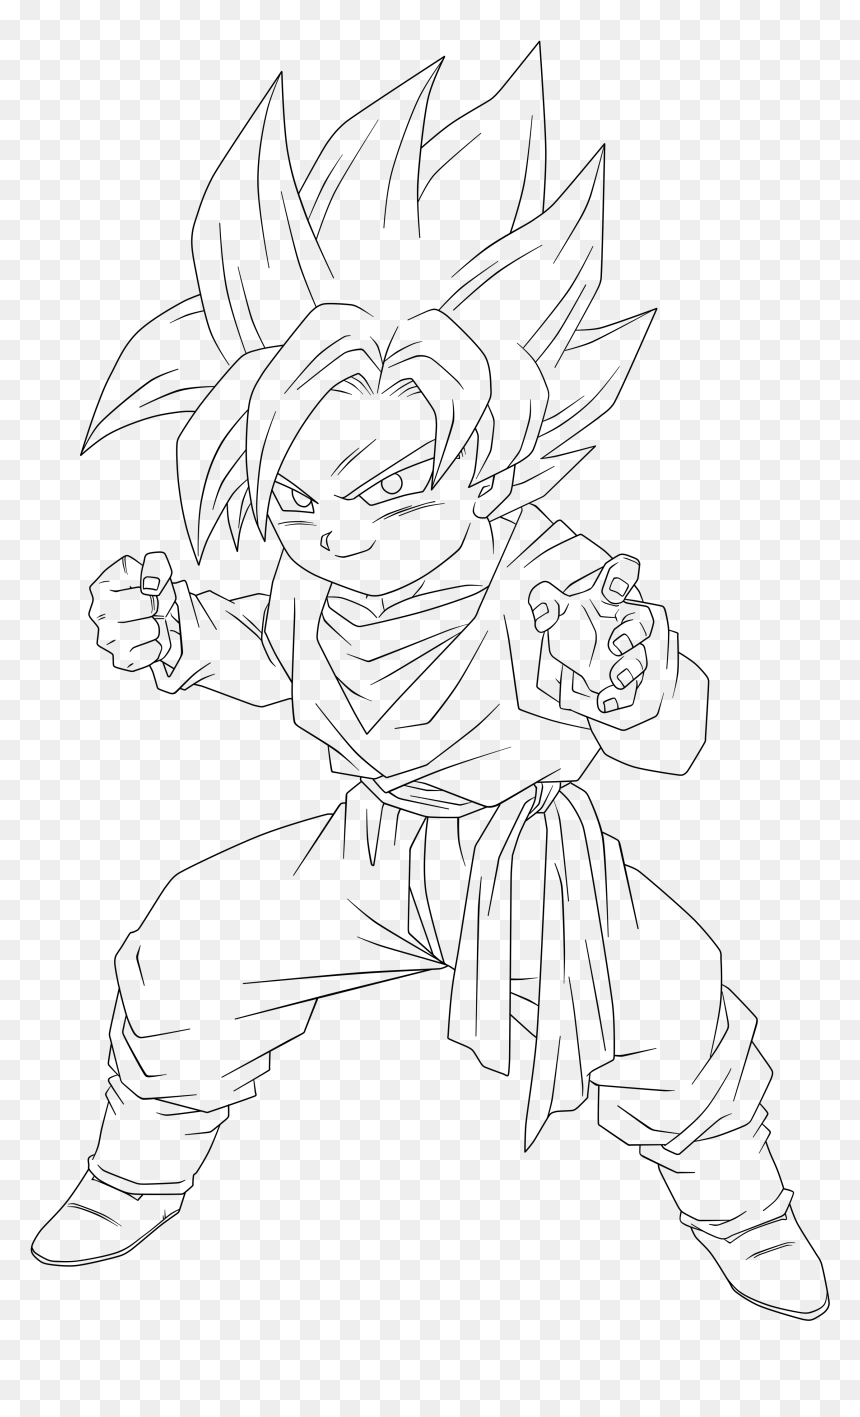 Troncos Dragon Ball Z Coloring Pages Componente Goten Drawing Hd Png Download 2693x4200 Png Dlf Pt